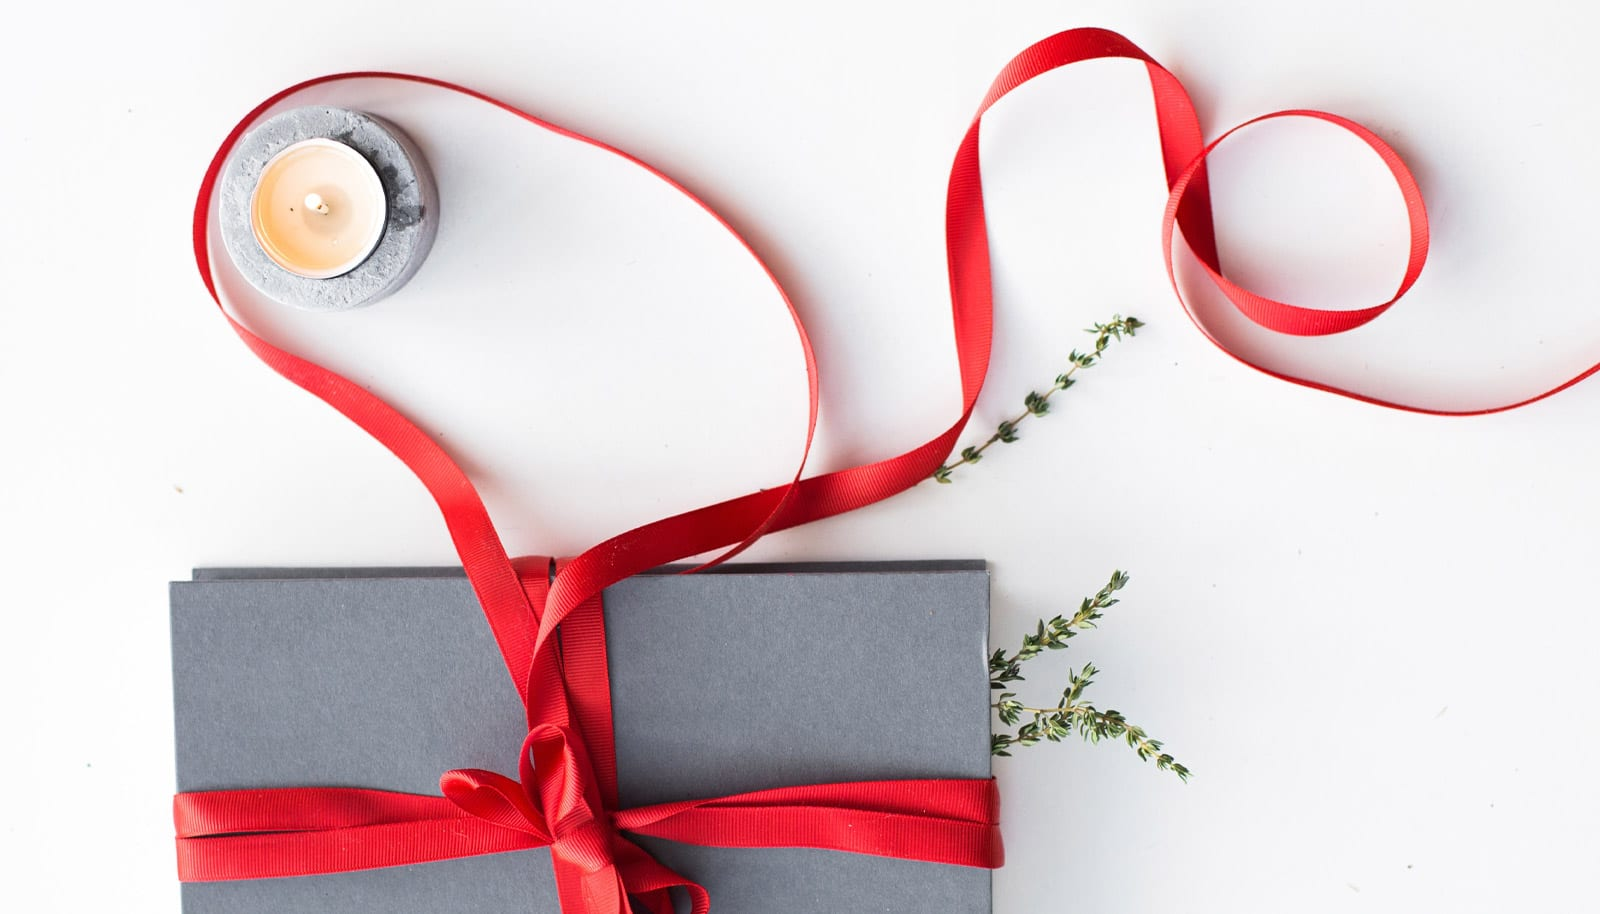 top view of gift accented with red ribbon